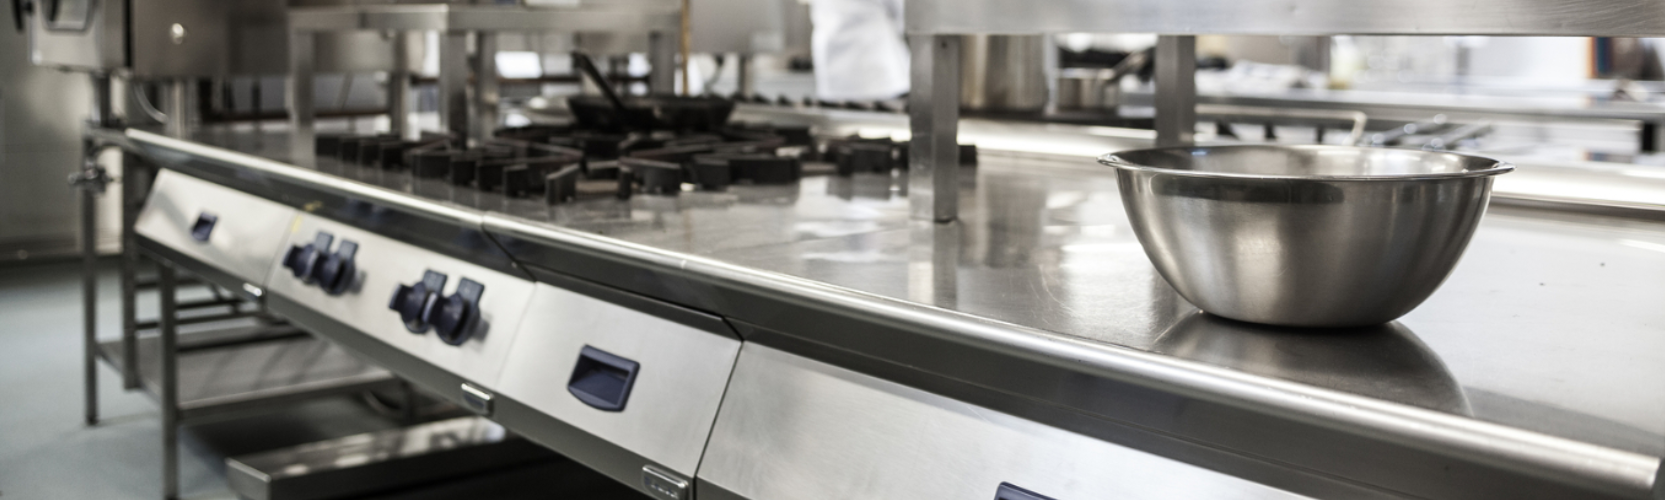 Offering Professional Kitchen Cleaning Services to the Commercial and Hospitality Sectors